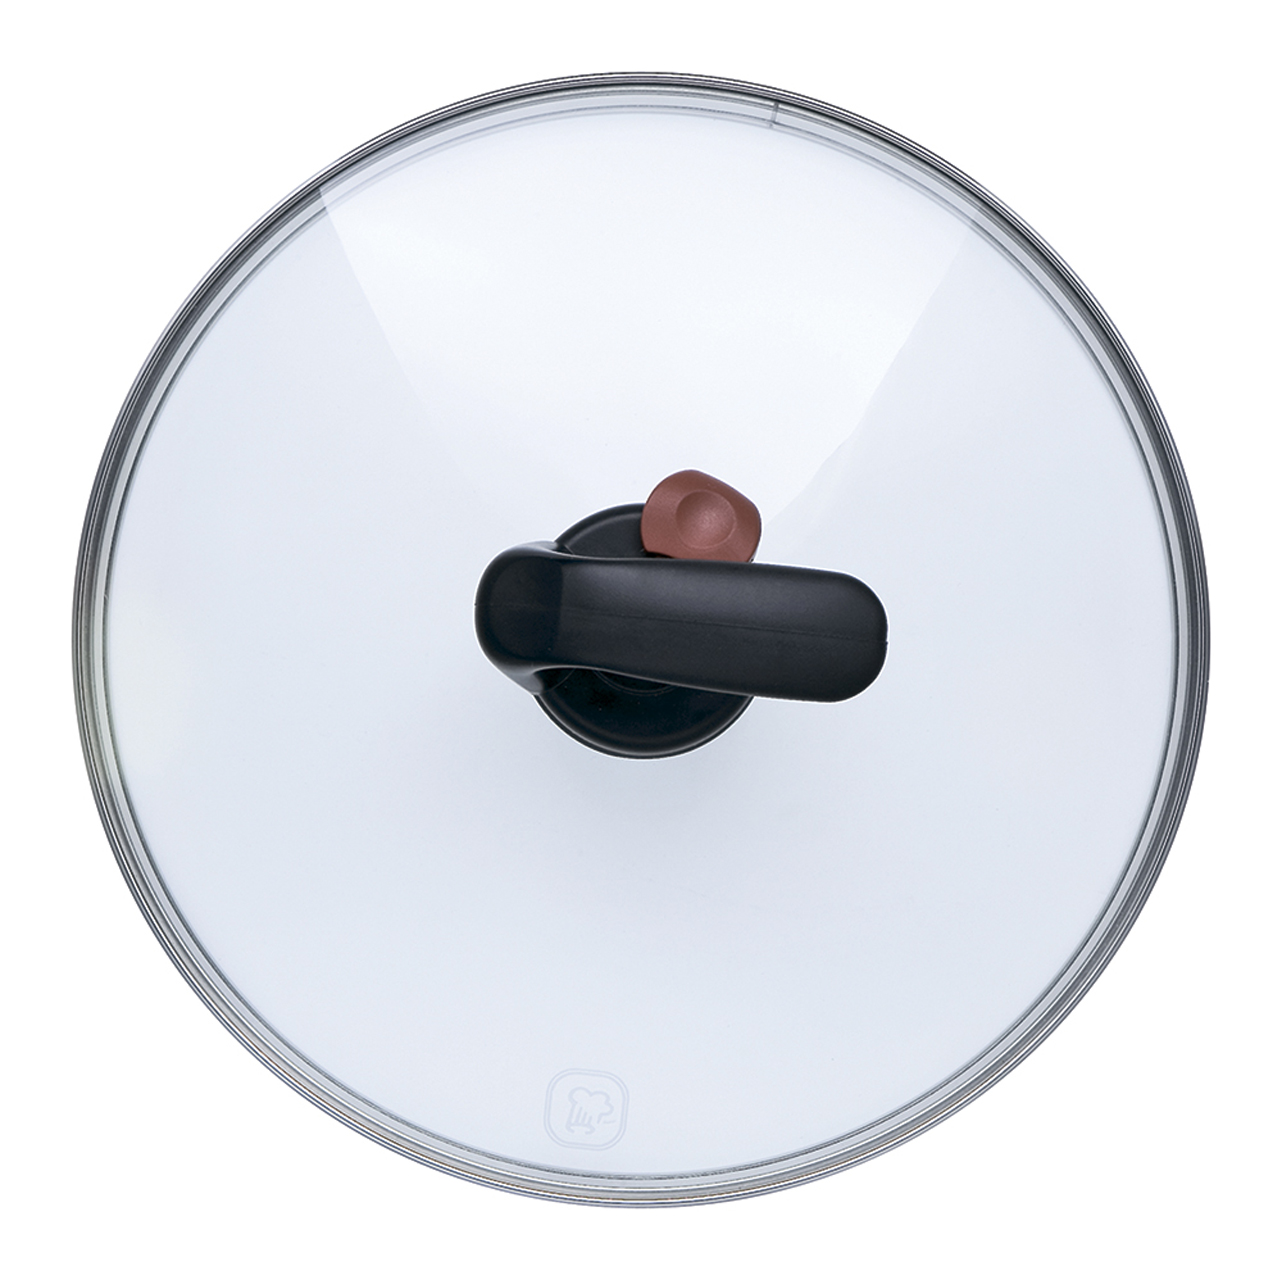 Cover glass Rondell Intelligent lids 26 cm TFG-26